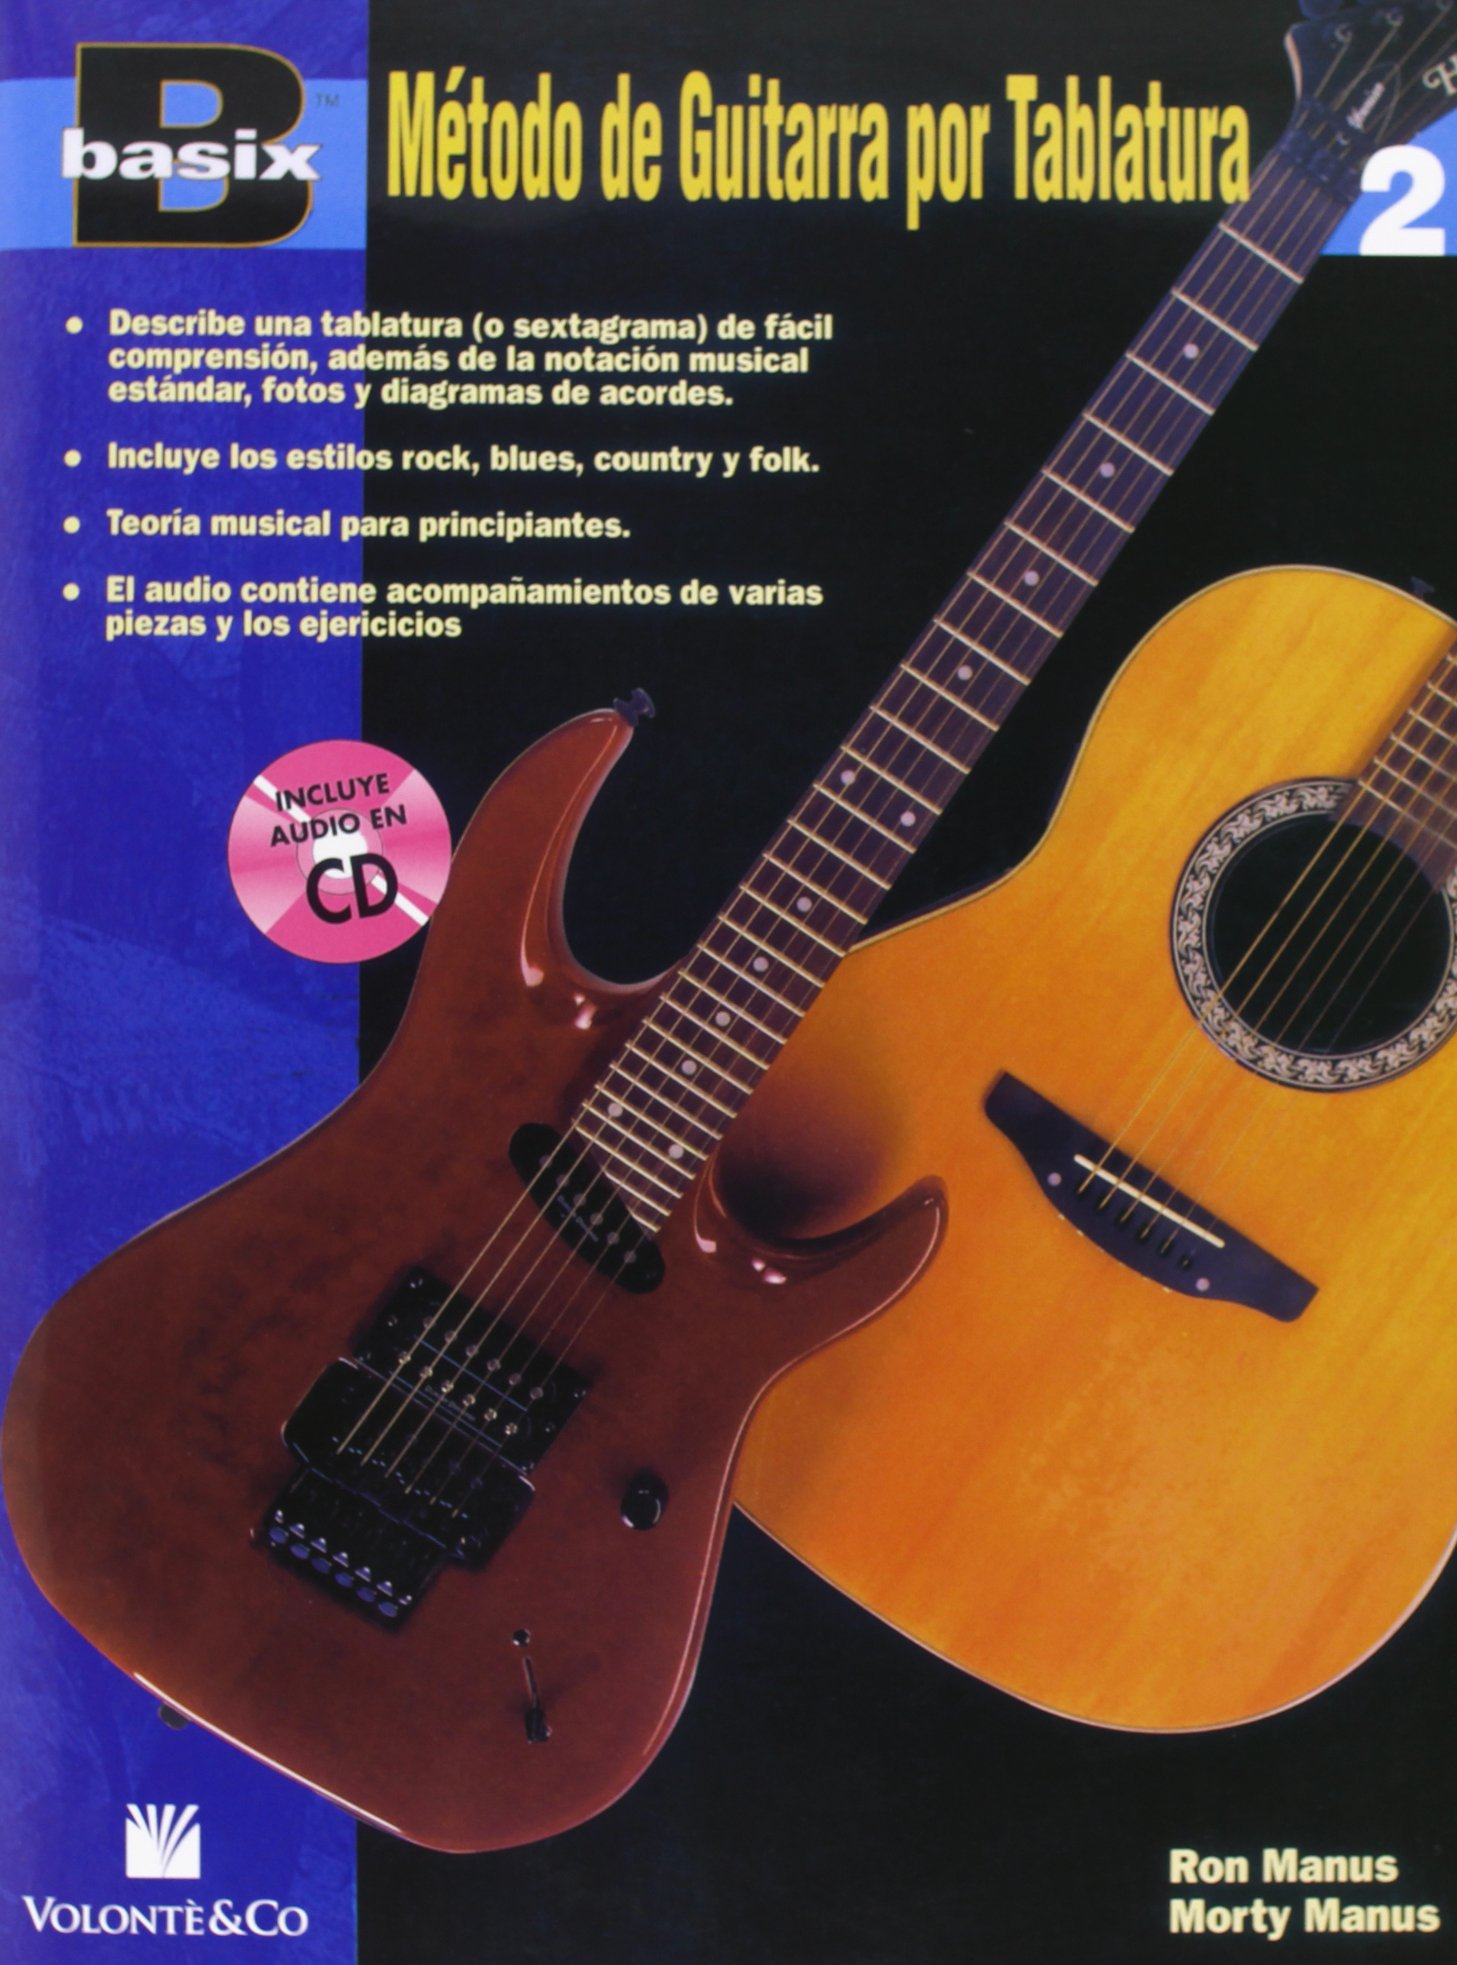 BASIX METODO GUITARRA 2 + CD: Amazon.es: Manus Ron/Manus Morty: Libros